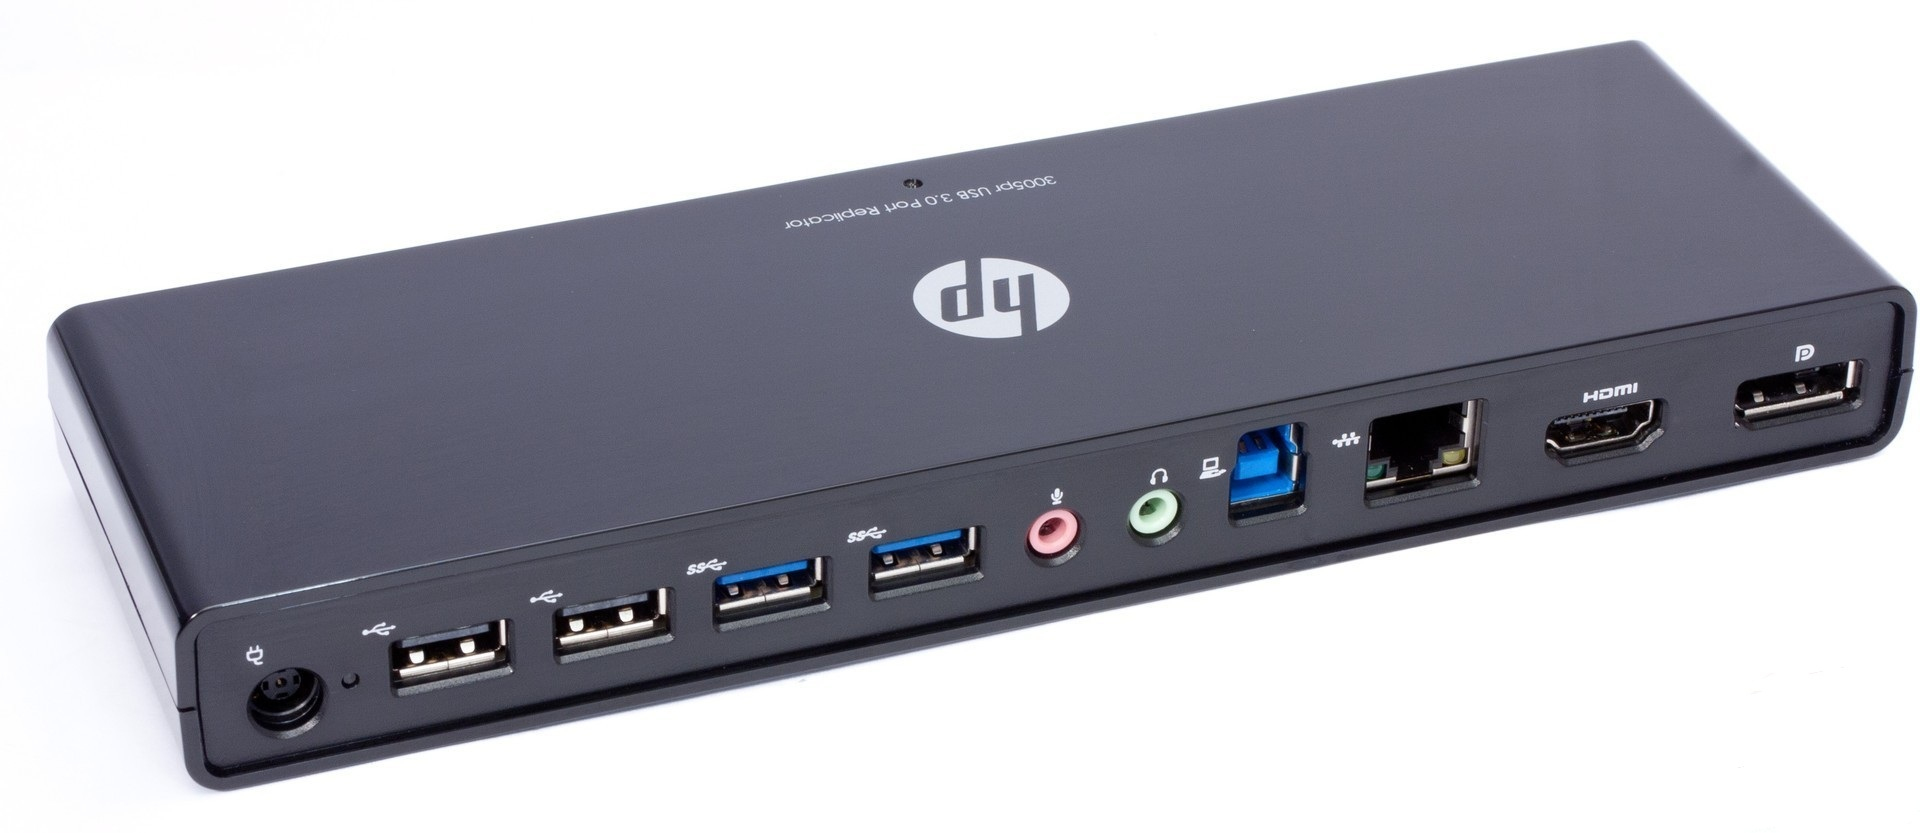 HP USB PORT REPLICATOR WINDOWS 8.1 DRIVER DOWNLOAD